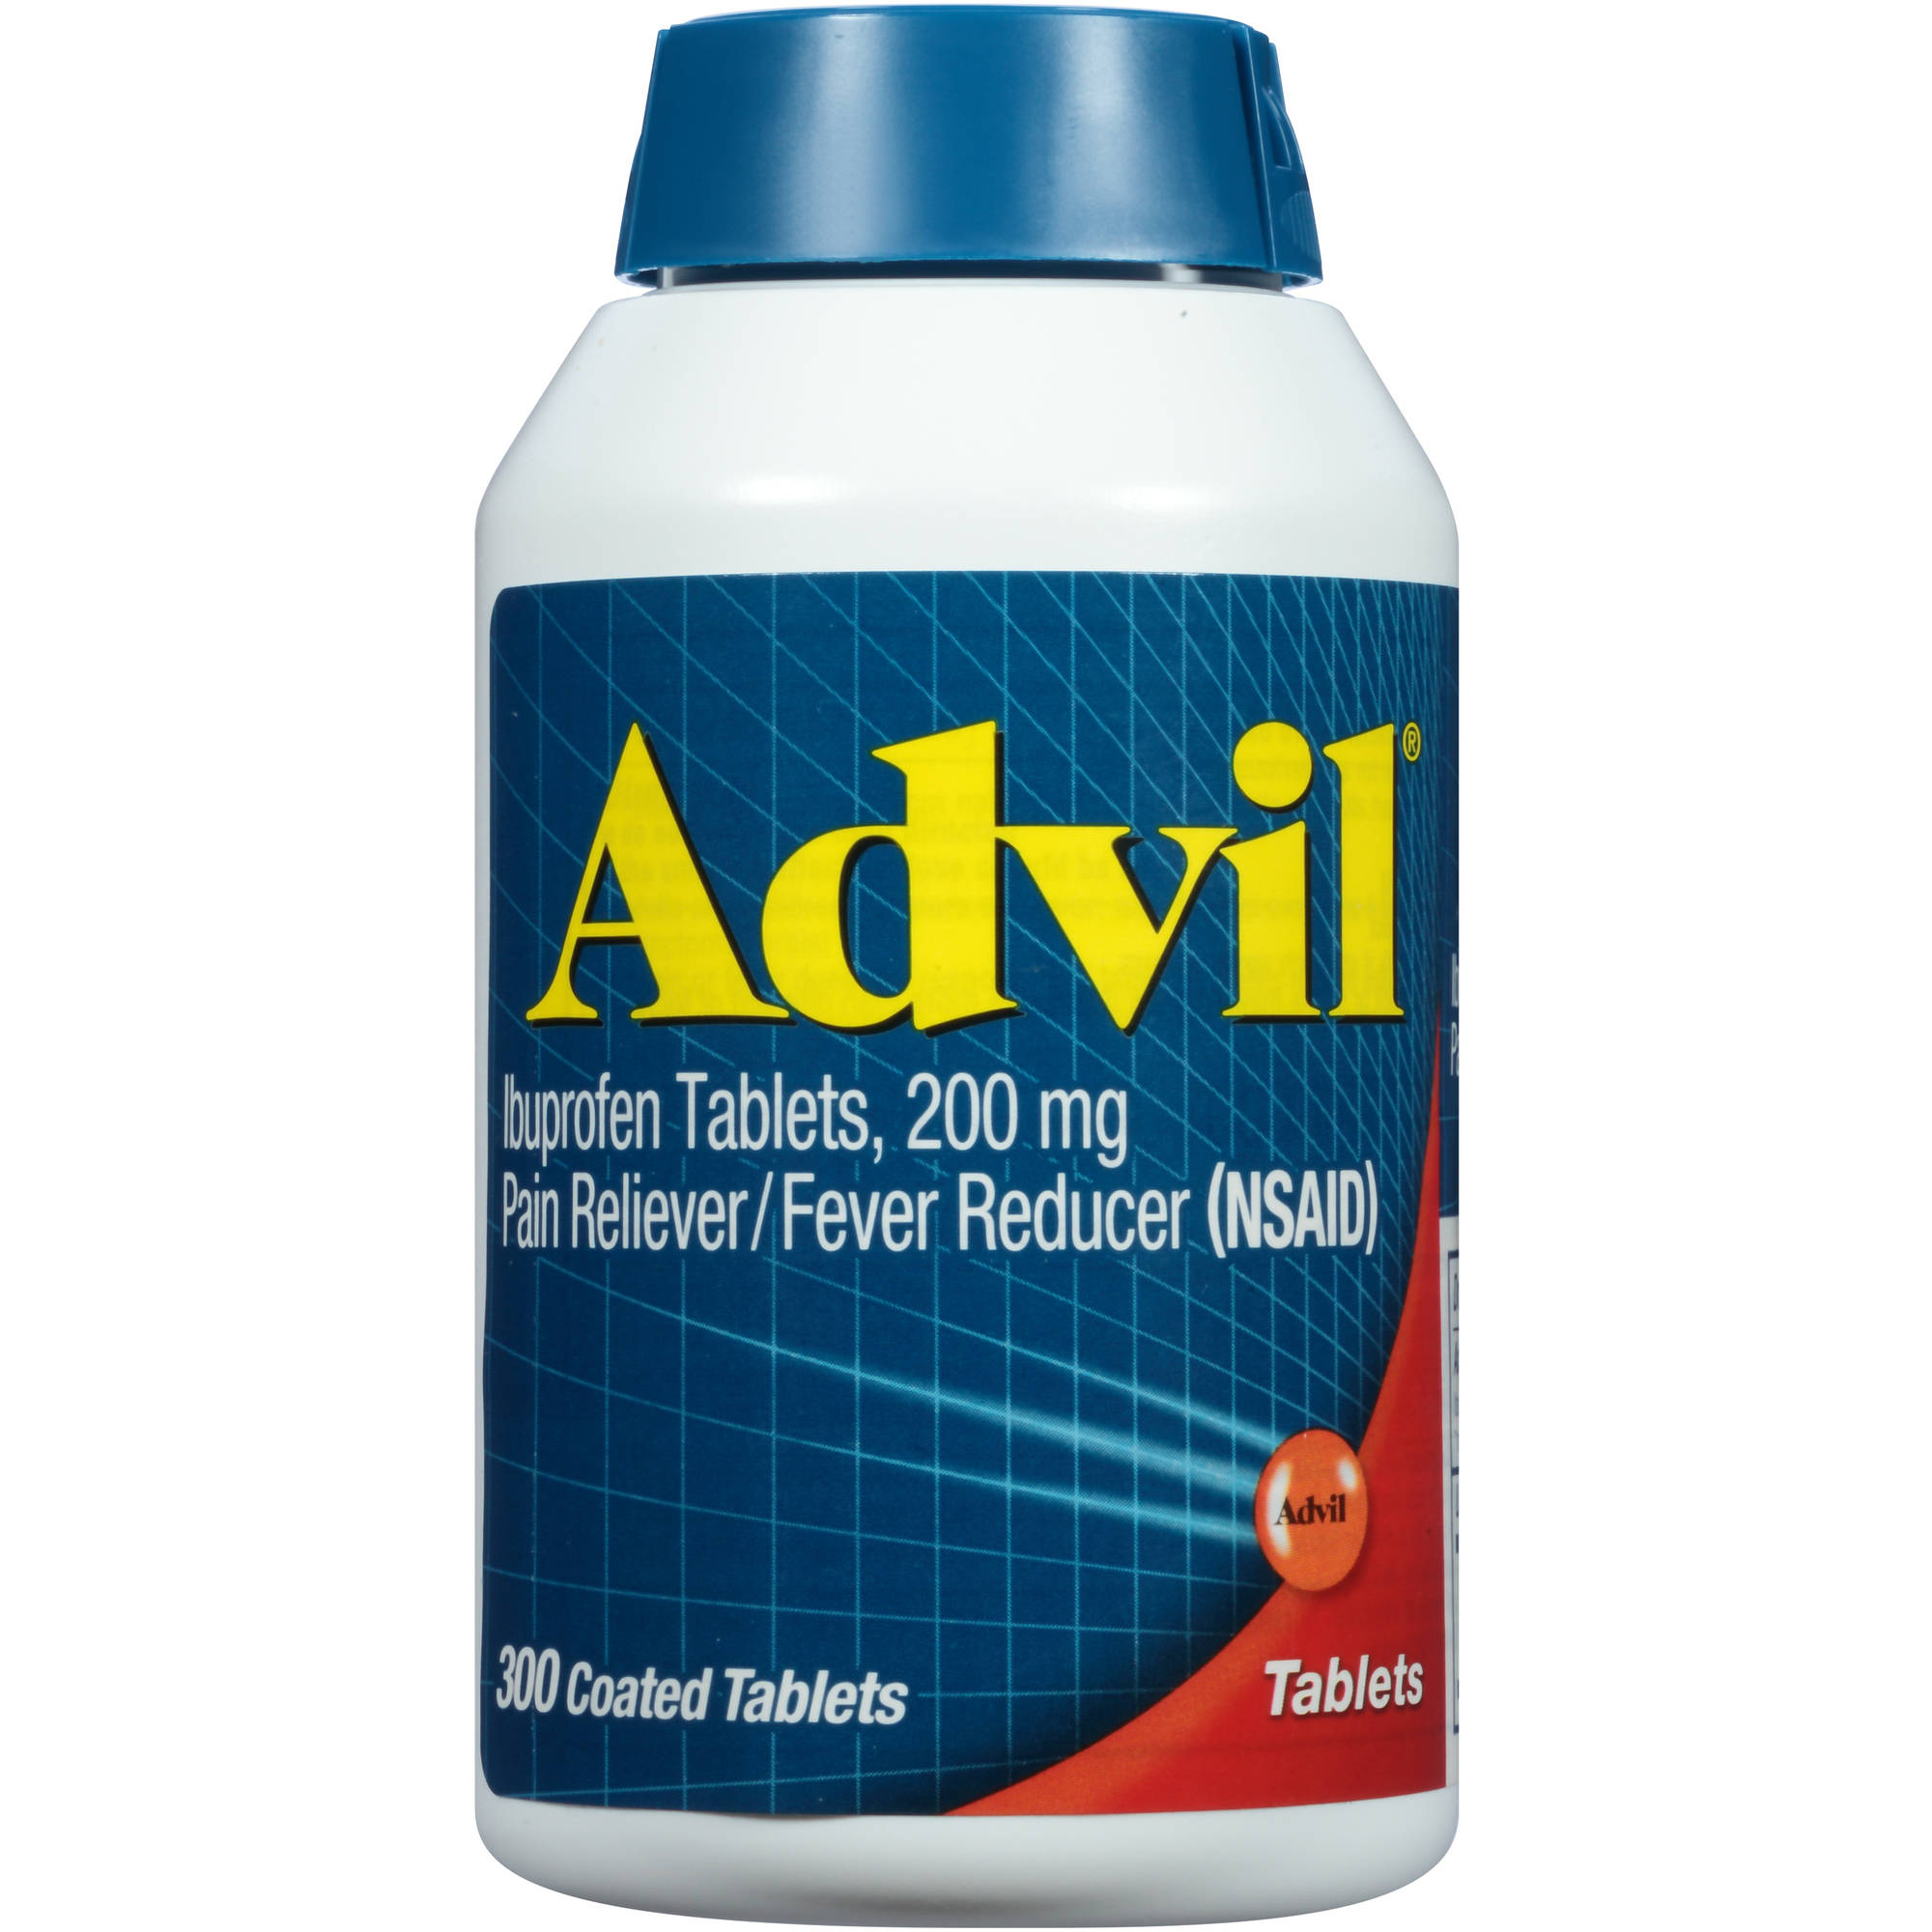 Advil Pain Reliever / Fever Reducer (Ibuprofen), 200 mg 300 count